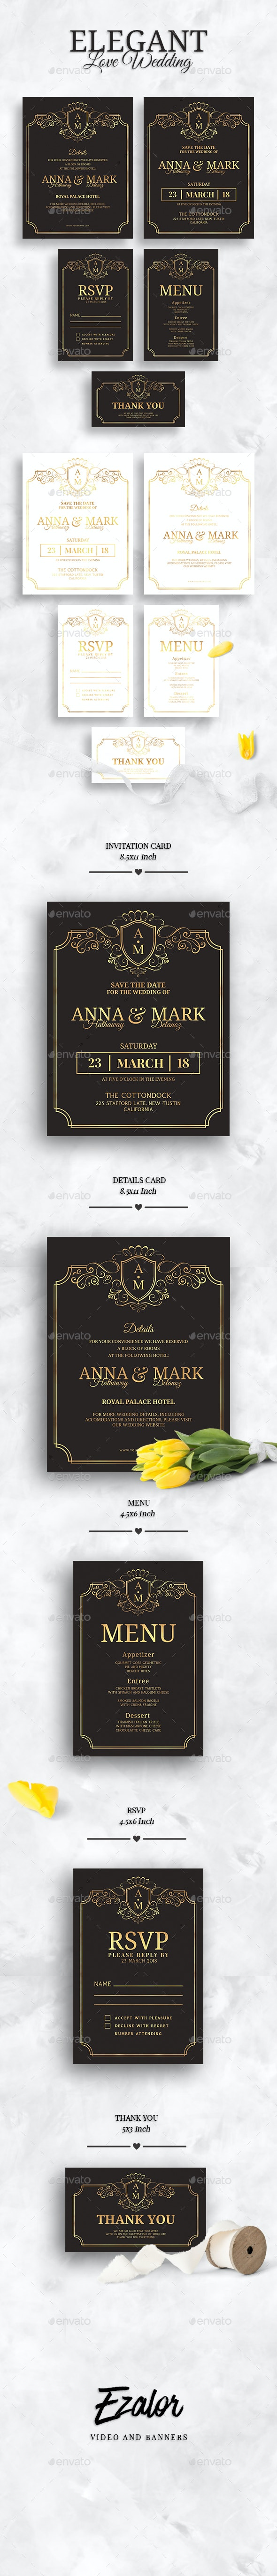 Elegant Wedding Set - Weddings Cards & Invites